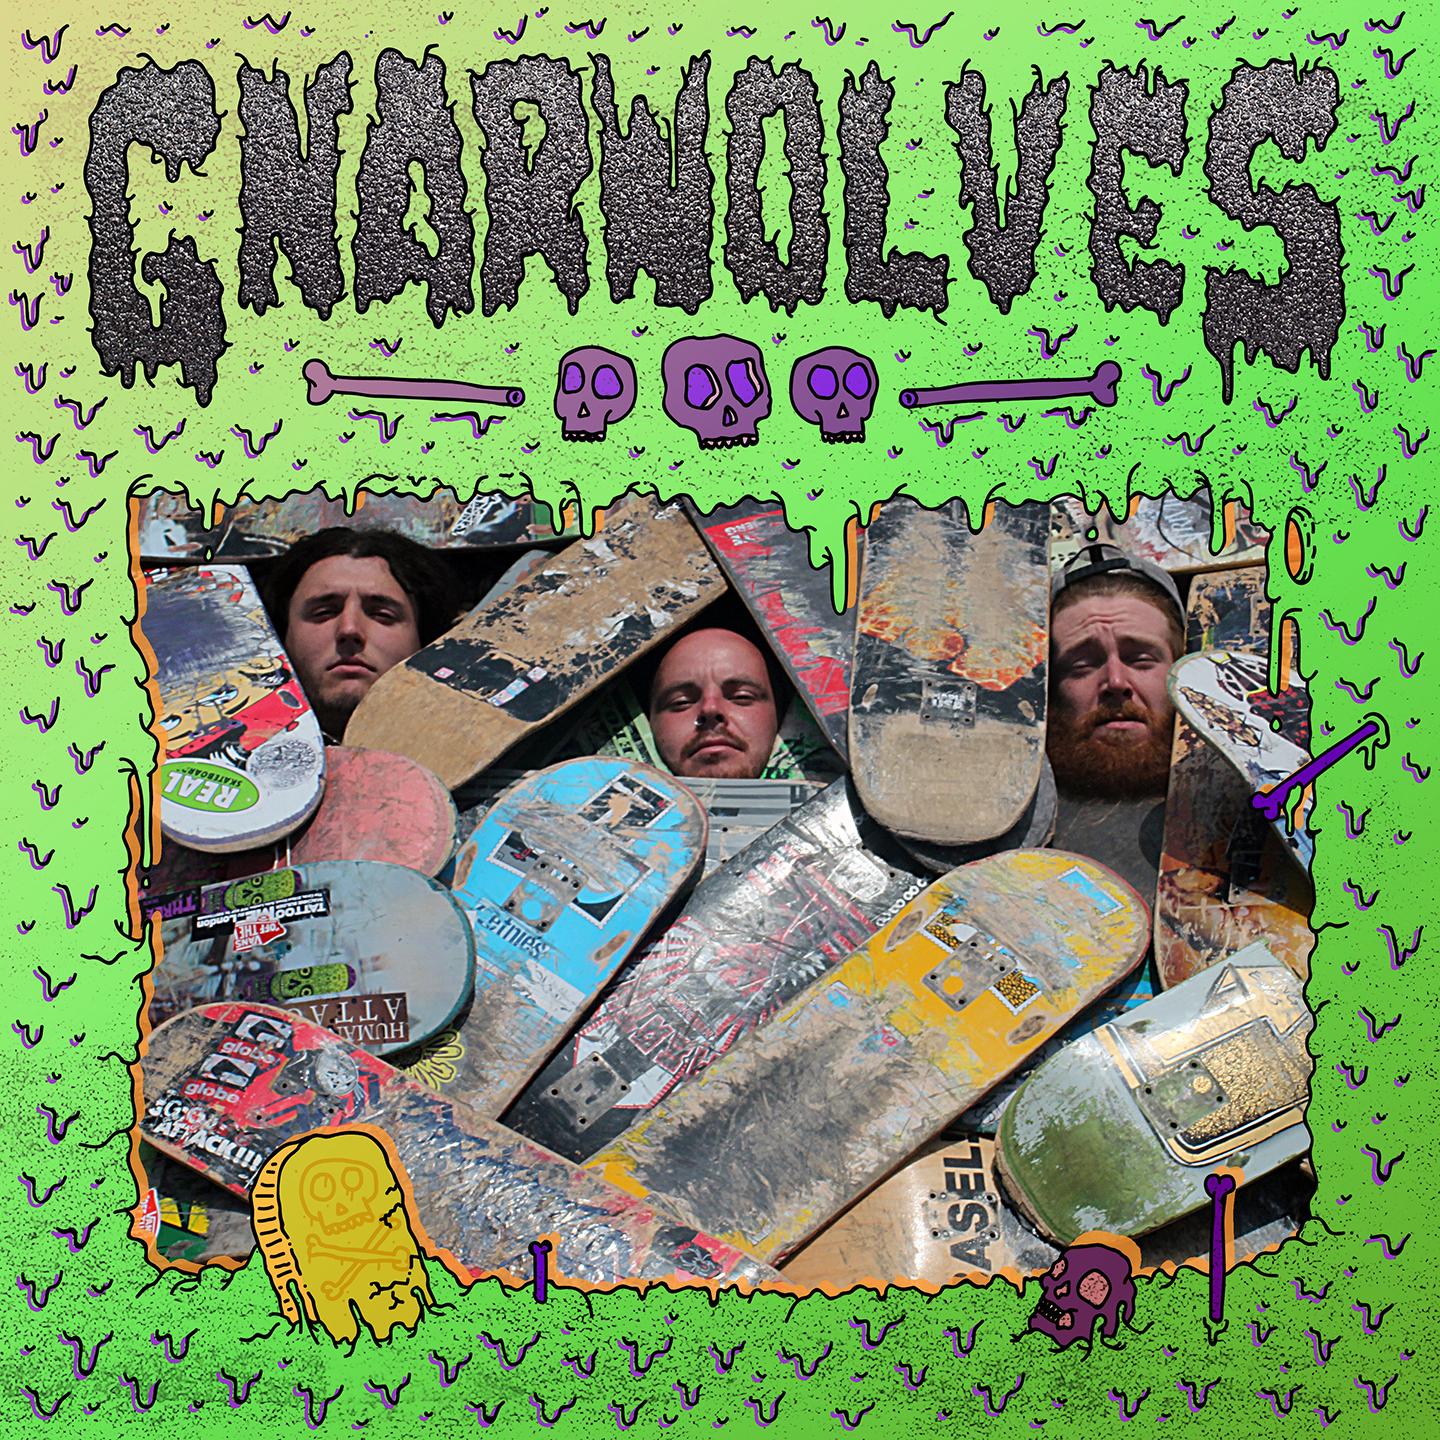 Gnarwolves - S/T LP (Big Scary Monsters/ Tangled Talk)